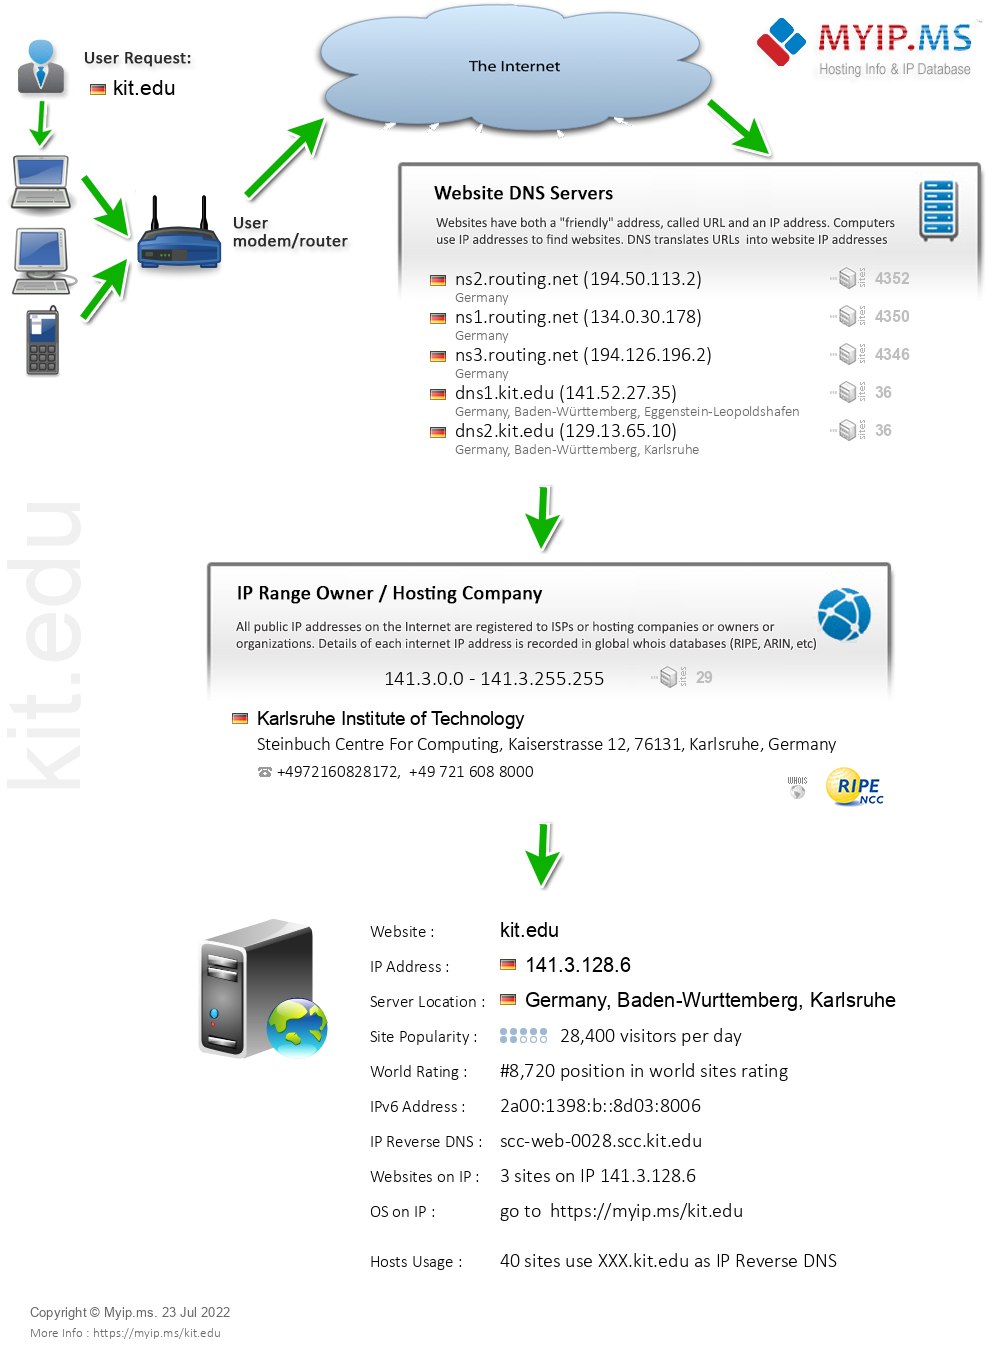 Kit.edu - Website Hosting Visual IP Diagram